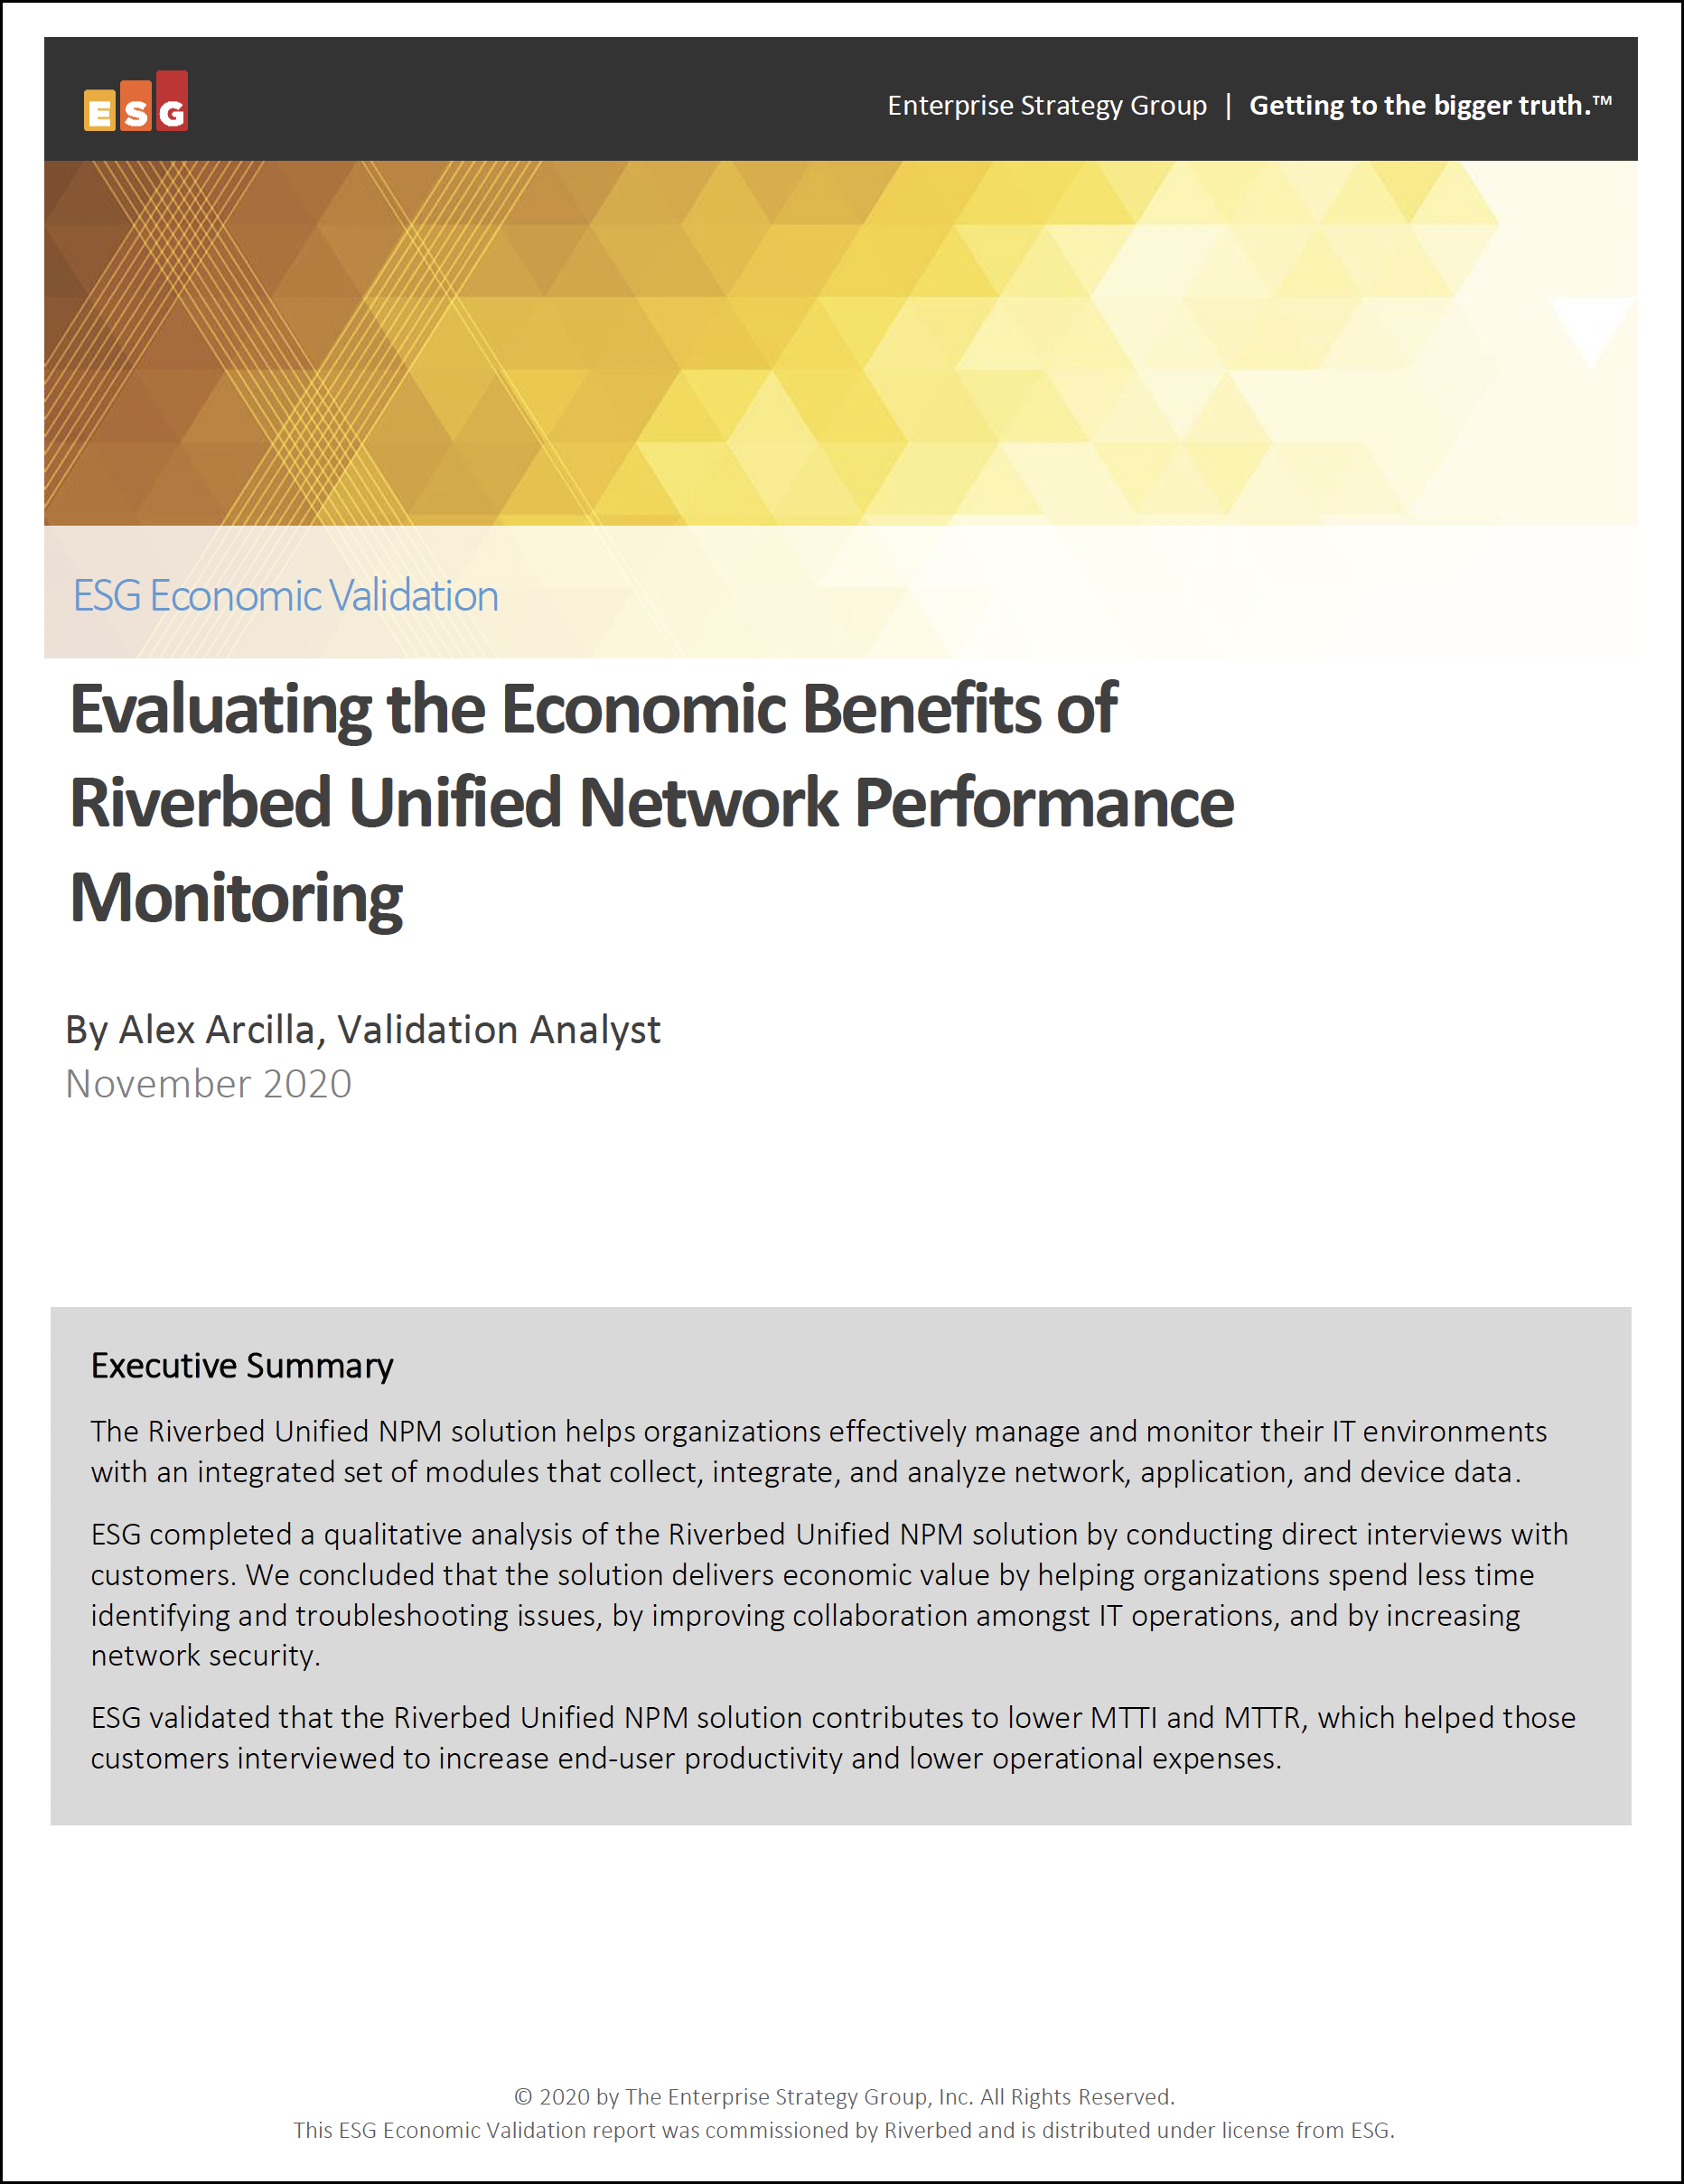 Riverbet_Evaluating the Economic Benefits of Riverbed Cover